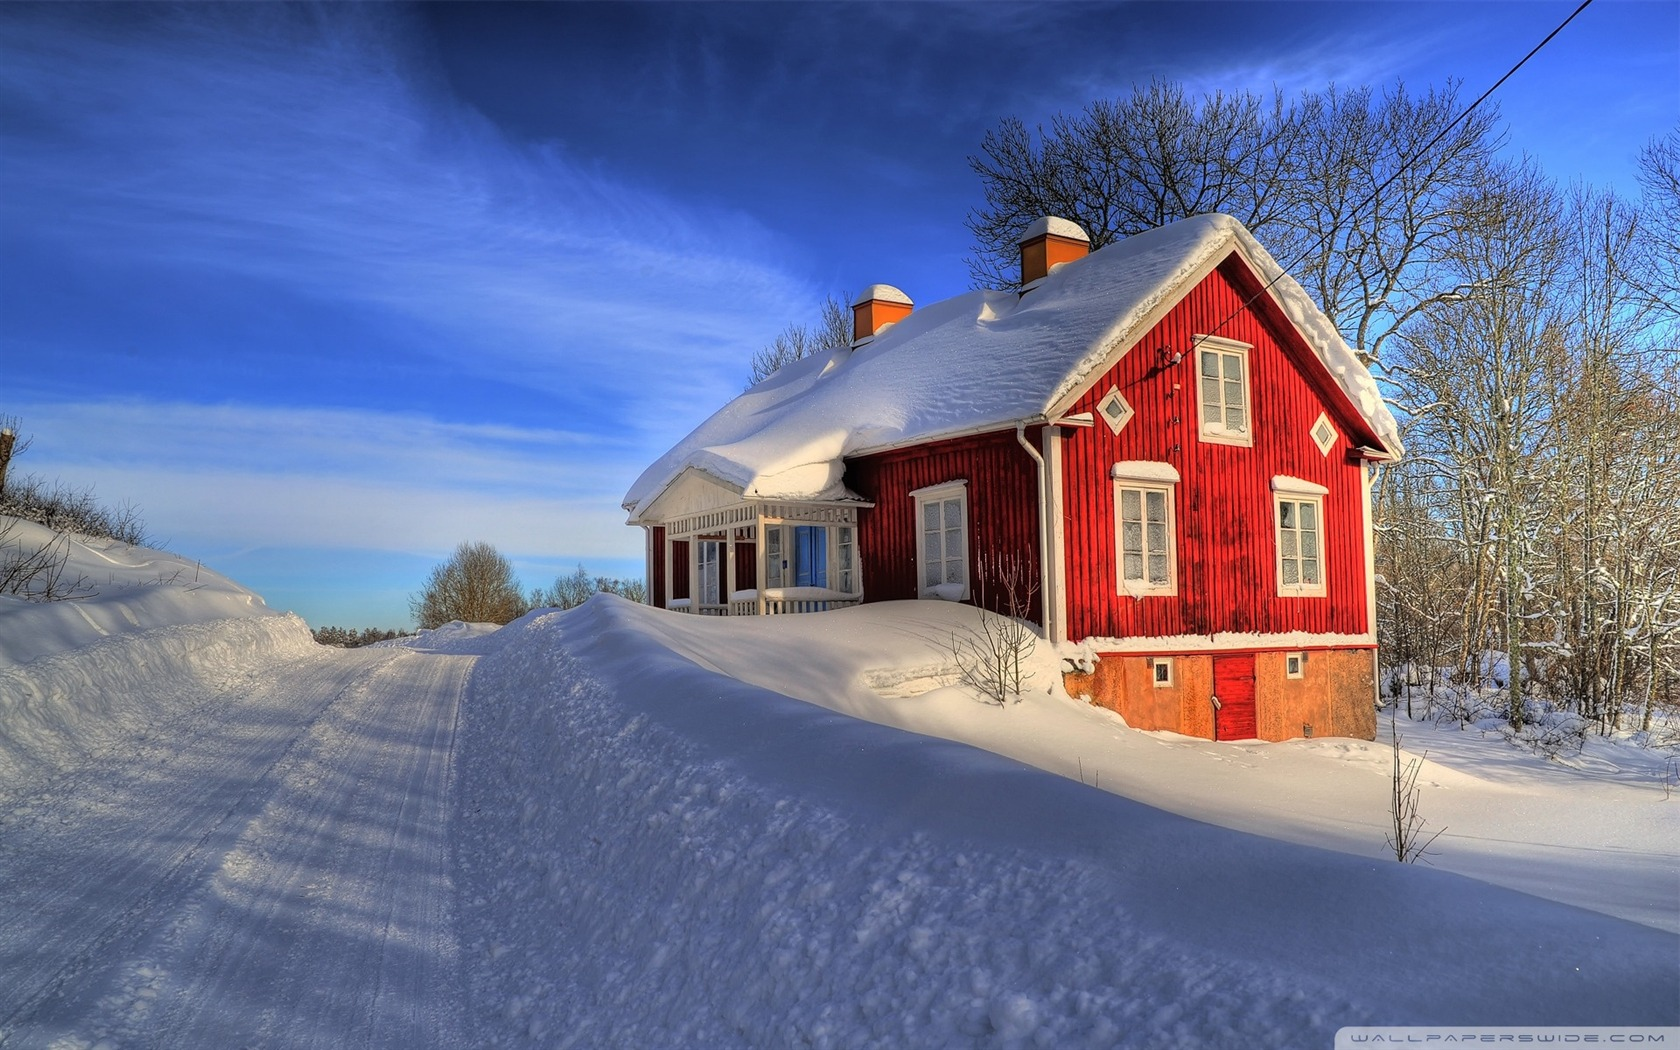 Red House Winter Desktop Wallpaper Winter Scenery